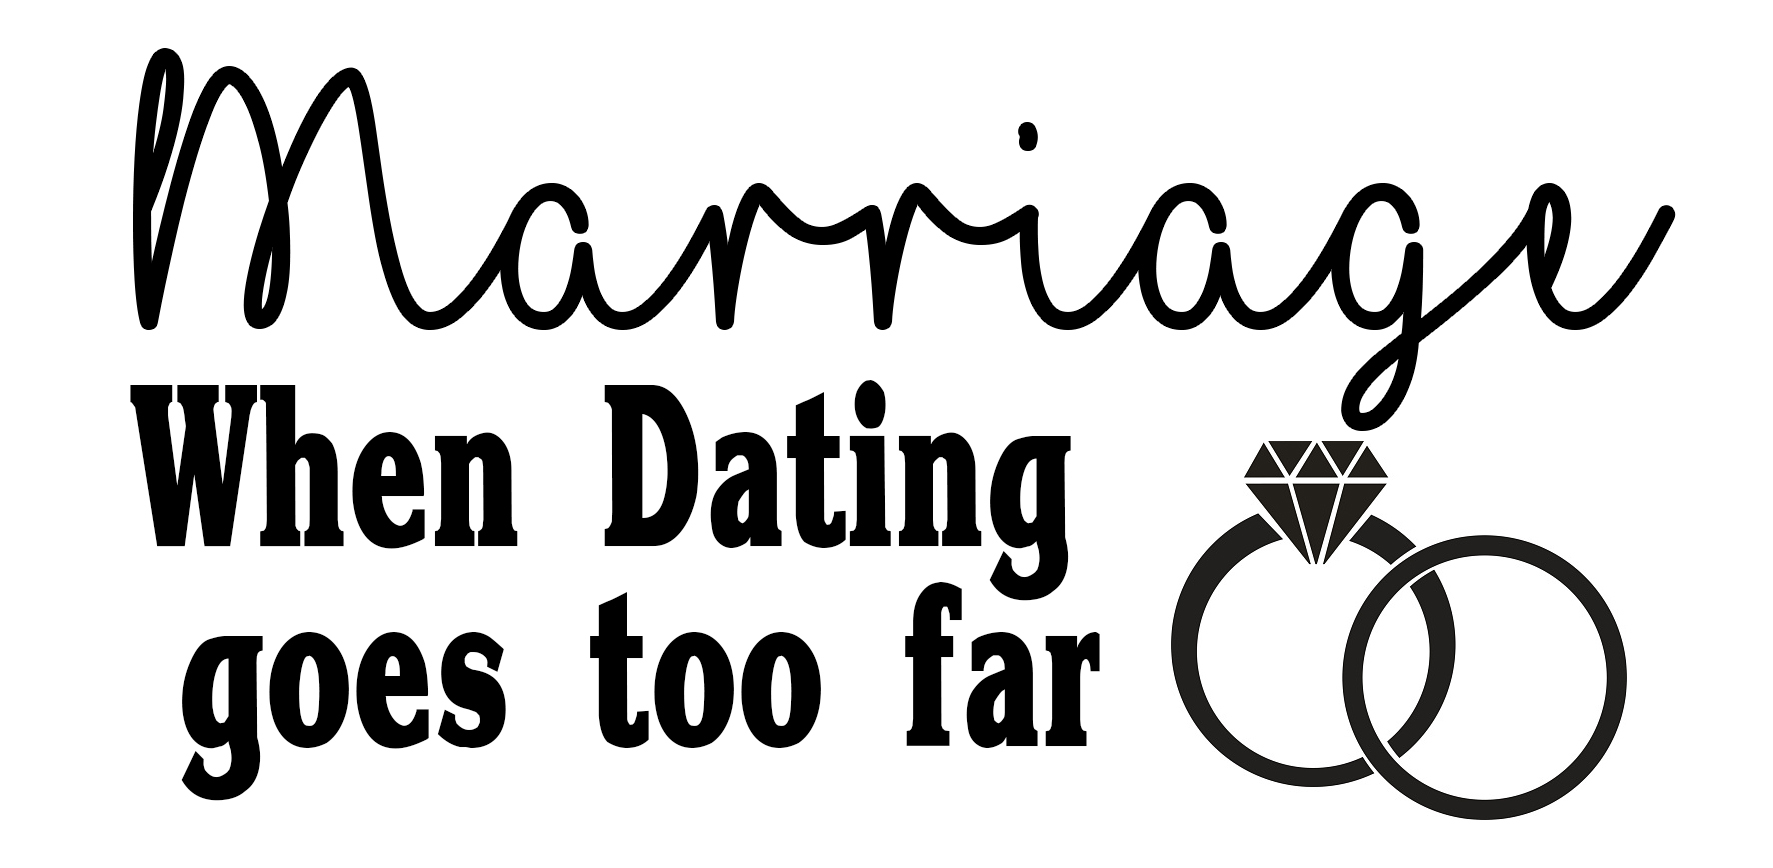 Free Marriage SVG File